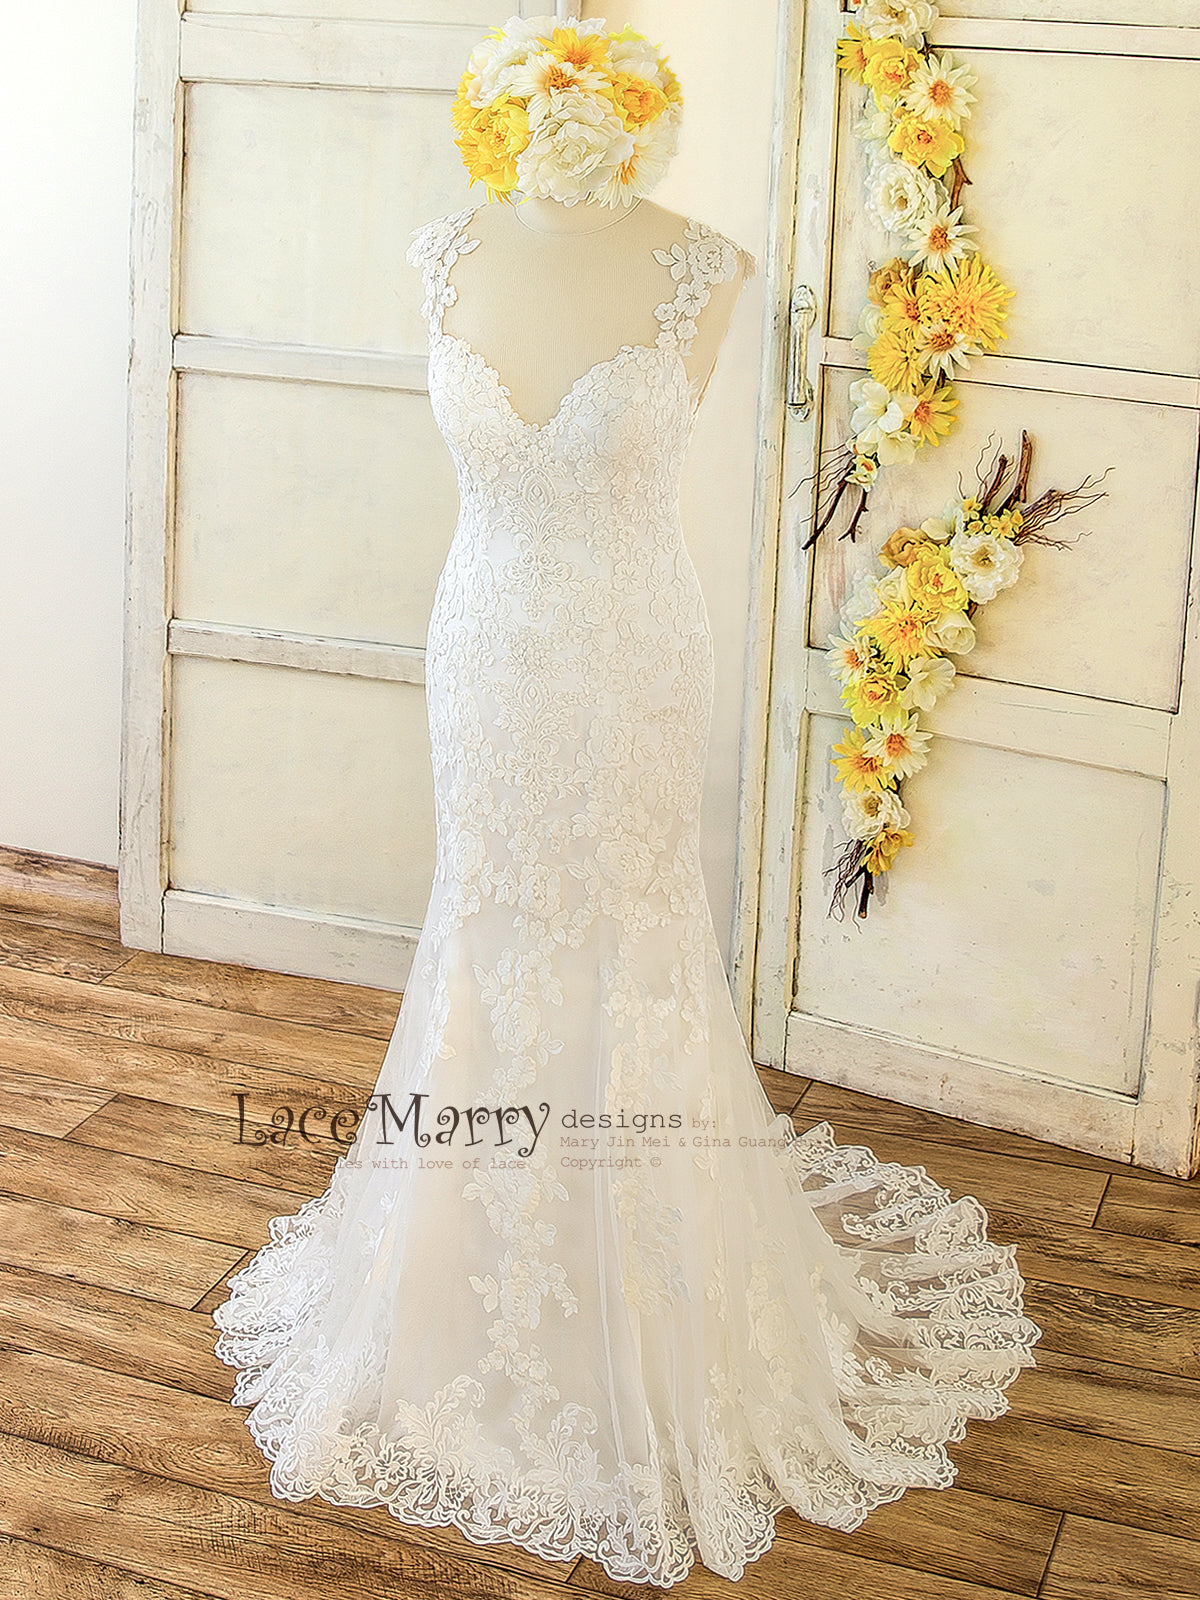 Beautiful Lace Applique Ivory Wedding Dress